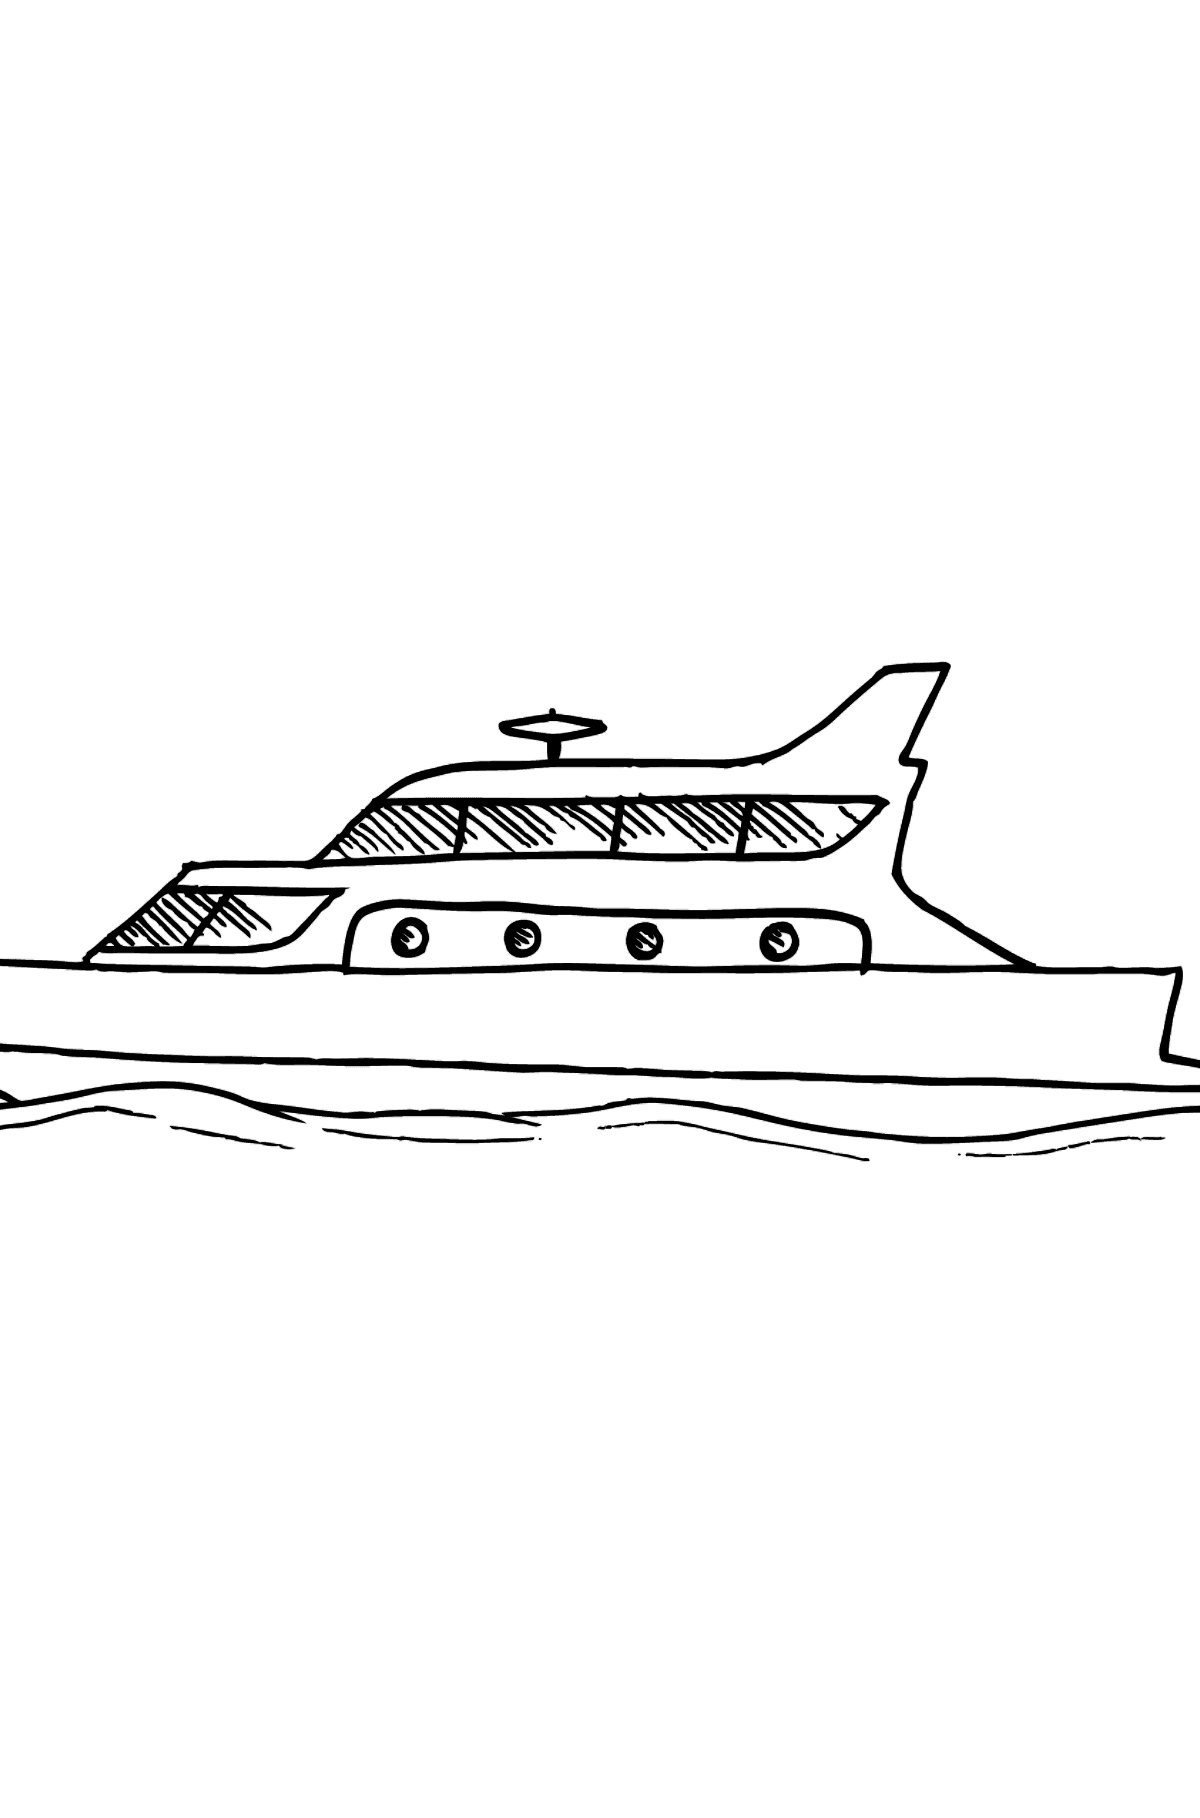 Coloring Page - A Yacht - Coloring Pages for Kids